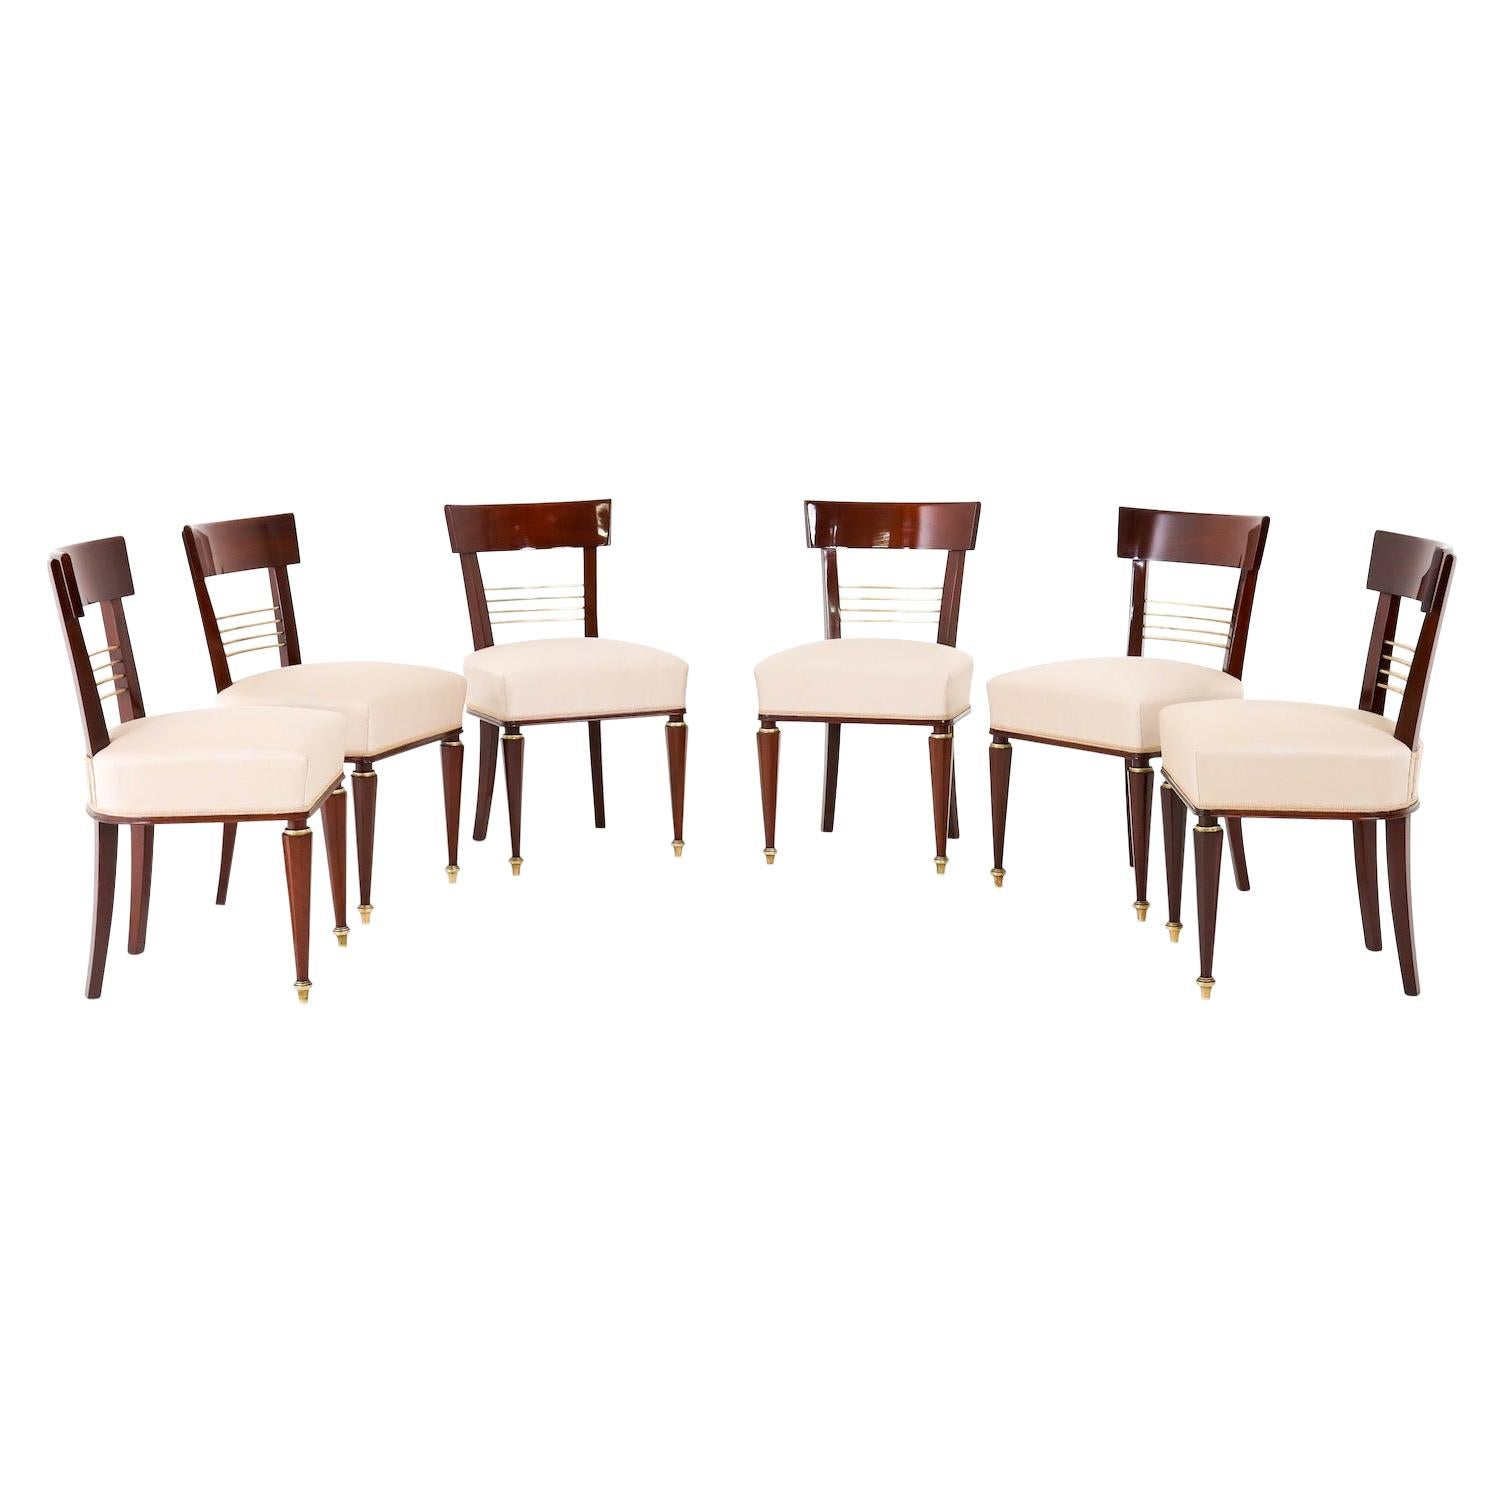 Set of Six Dining Room Chairs, Mid-19th Century